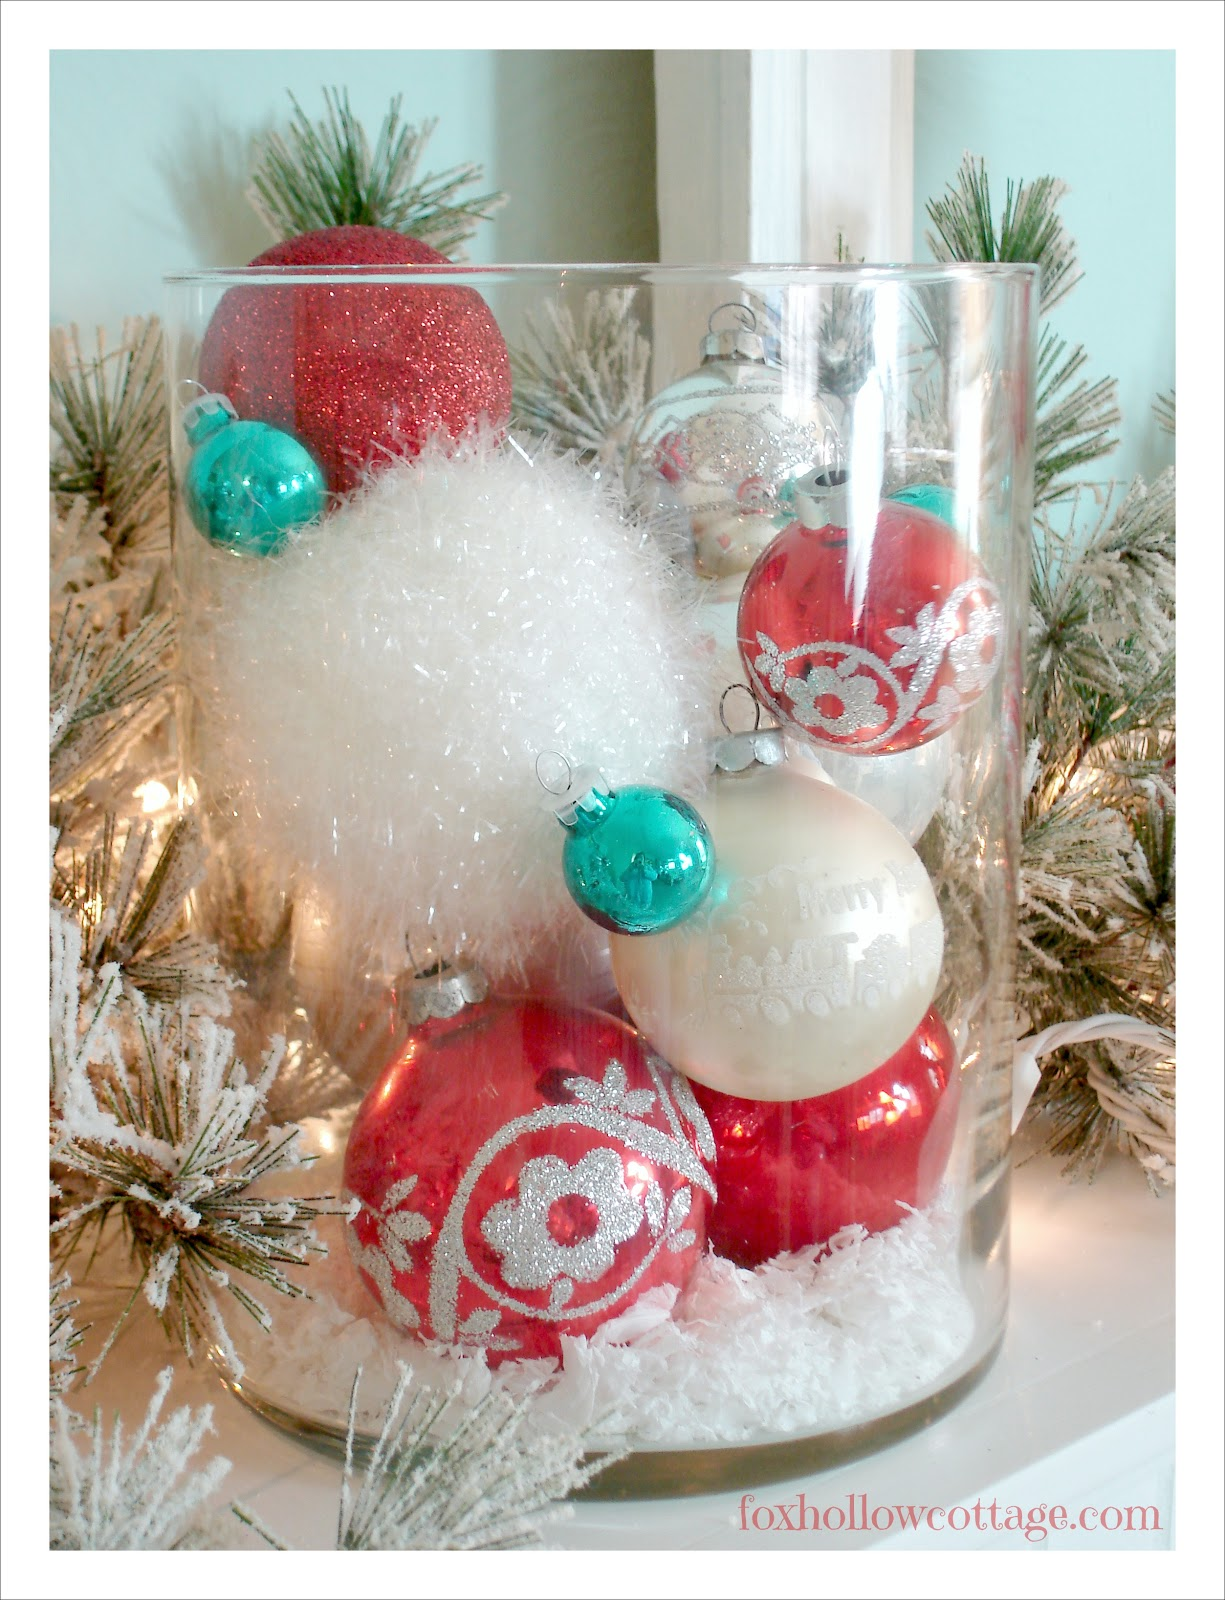 10 Quick Ideas For Decorating With Christmas Ornaments. Vintage Christmas Village Decorations. Black Friday Christmas Ornaments Sale. Vintage Glass Christmas Ornaments Ebay. How To Make Christmas Ornaments With A Photo. Christmas Tree Decorations Words. John Lewis Home Christmas Decorations. Christmas Homemade Door Decorations. Christmas Crafts Pine Cones Pinterest